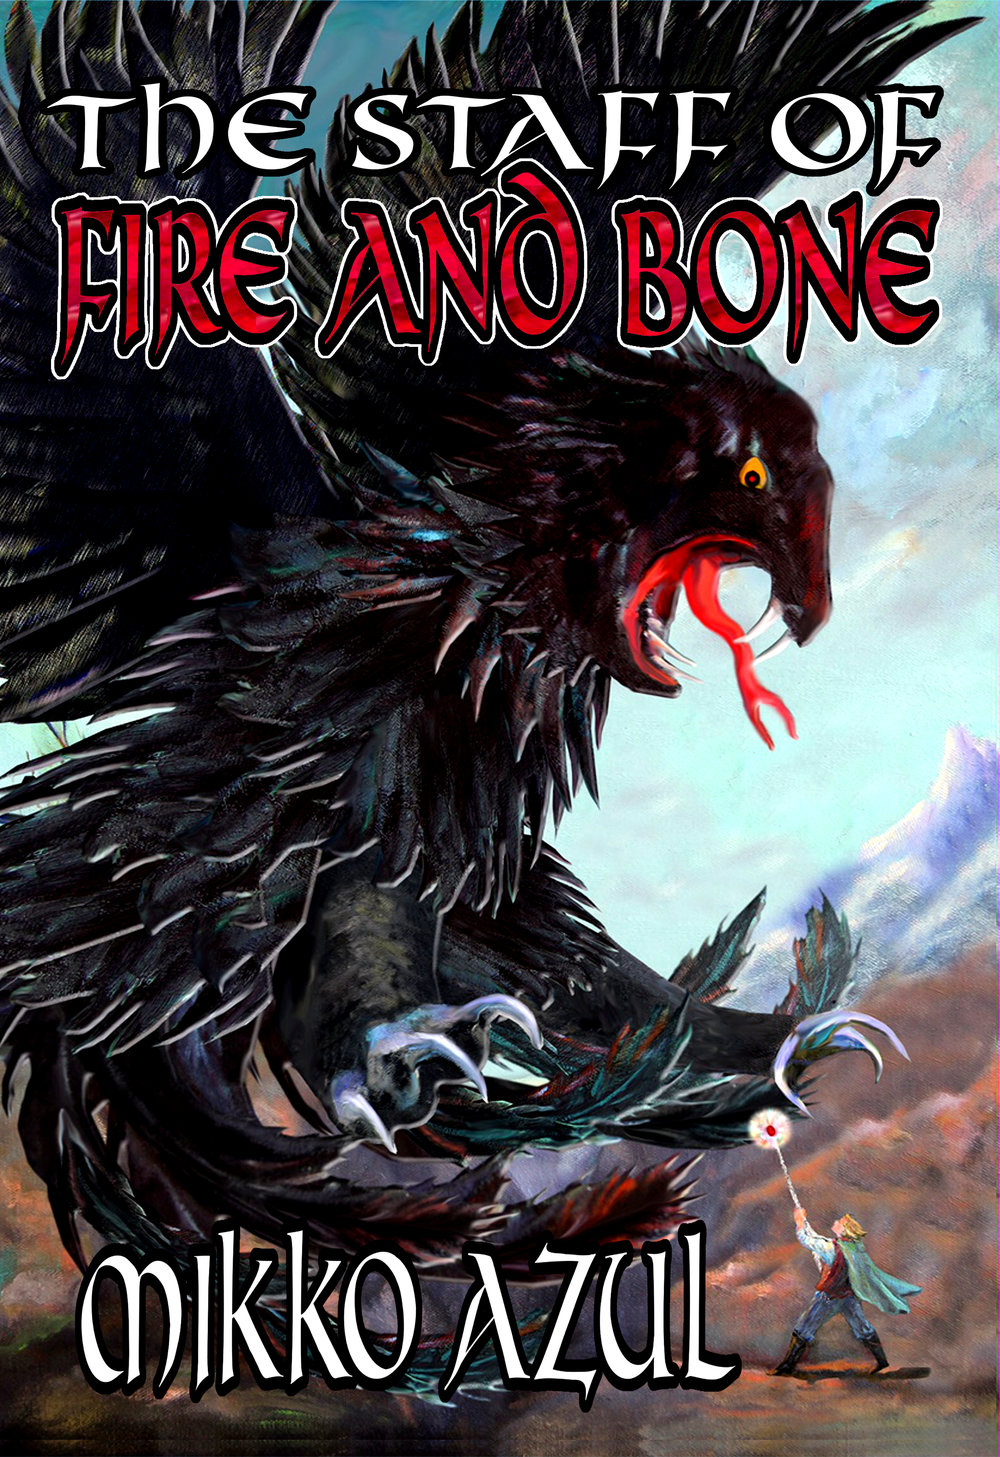 The+Staff+of+Fire+and+Bone+hardcover+front+cover